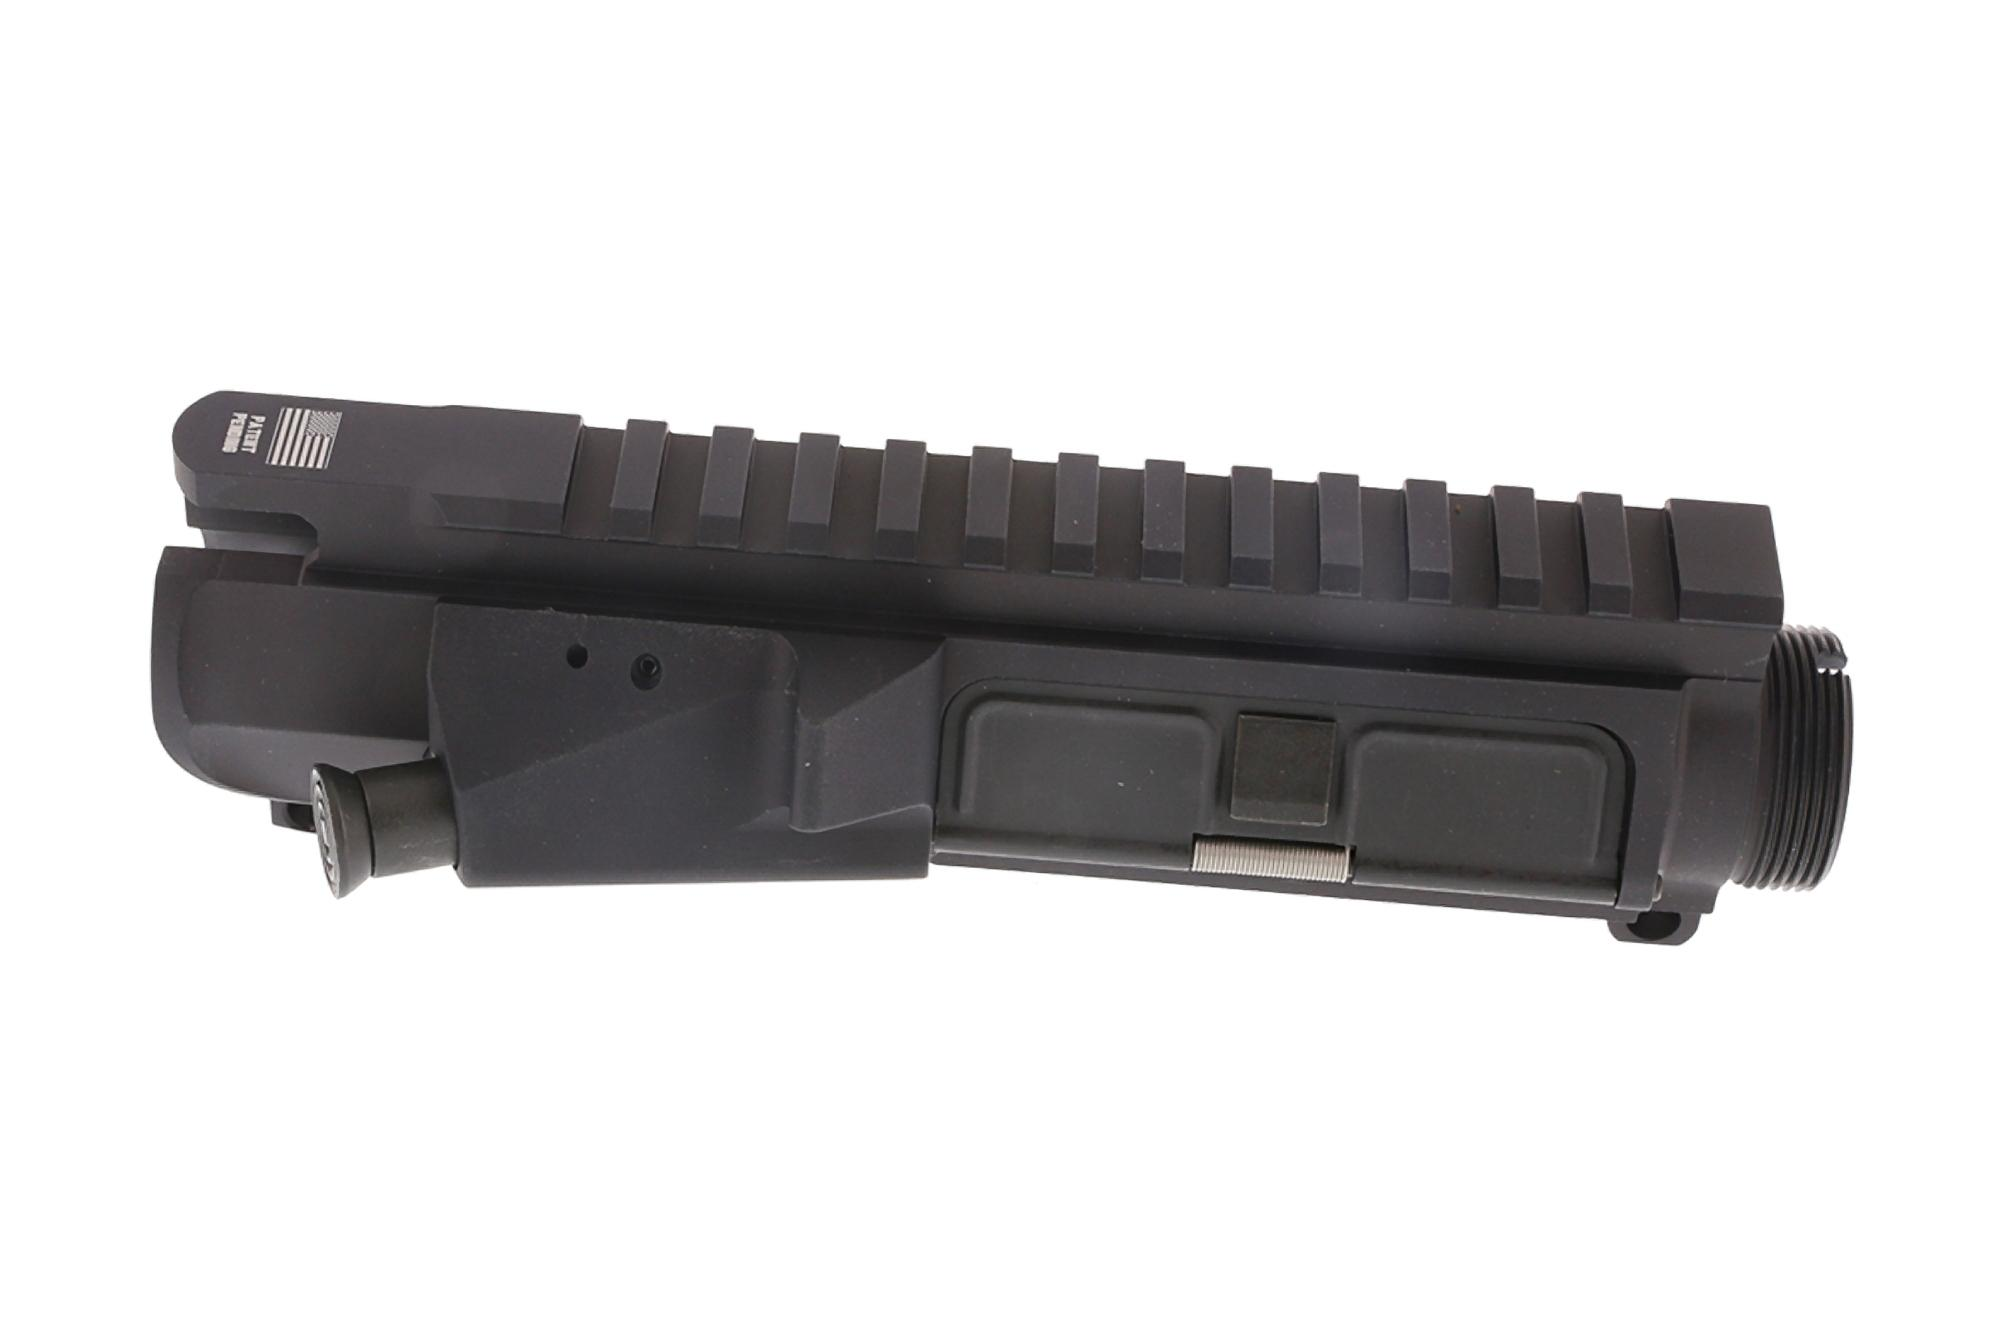 Vltor MUR Upper Receiver with Bolt Assist and Shell Deflector - Black